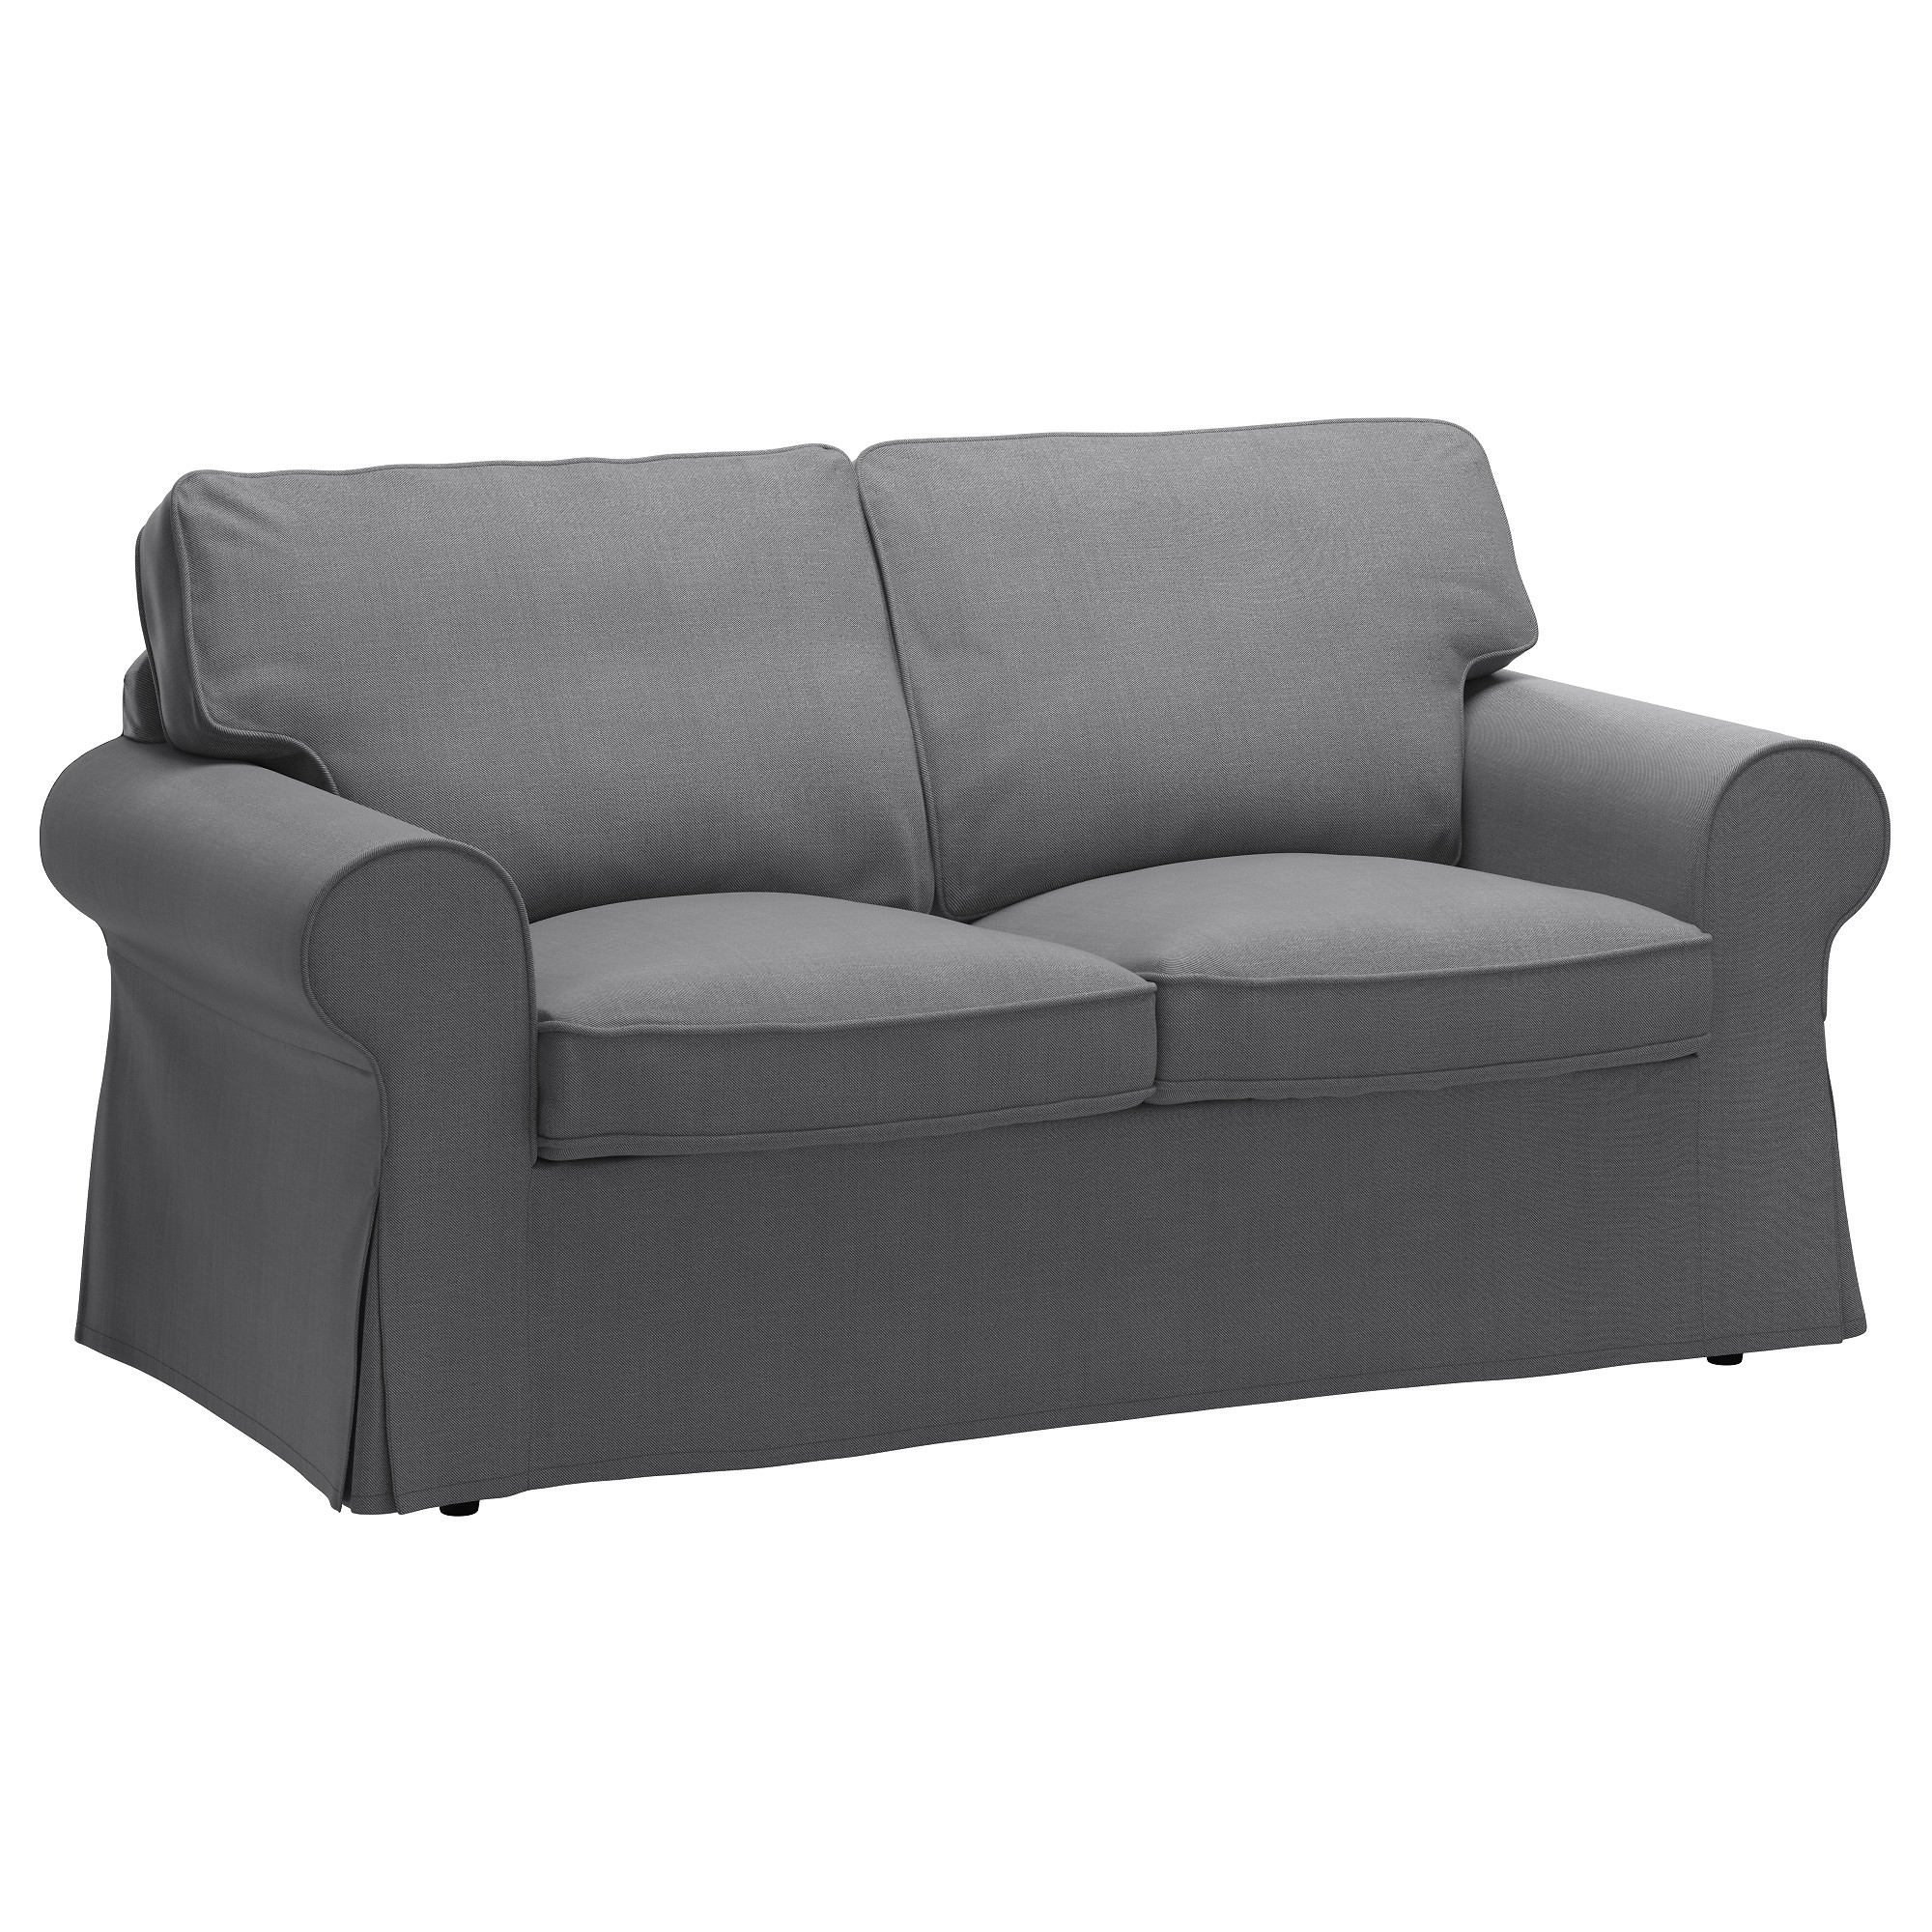 Popular Indoor Chaise Lounge Covers Pertaining To Furniture: Protecting Furniture From Kids With Sofa Arm Covers (View 11 of 15)